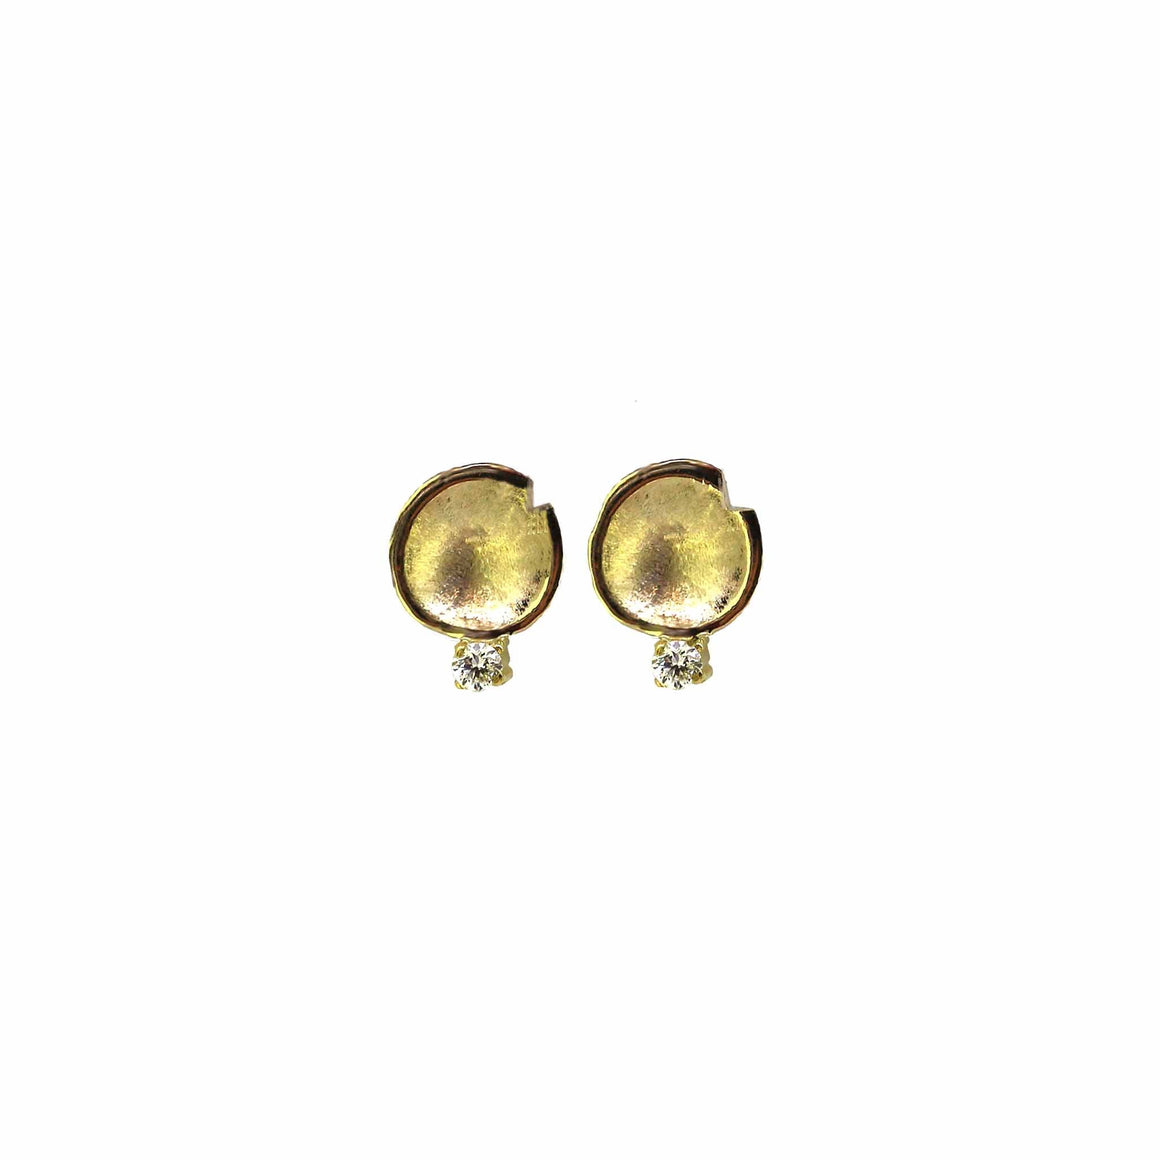 Petite Lilypad Drop Diamond Stud Earrings